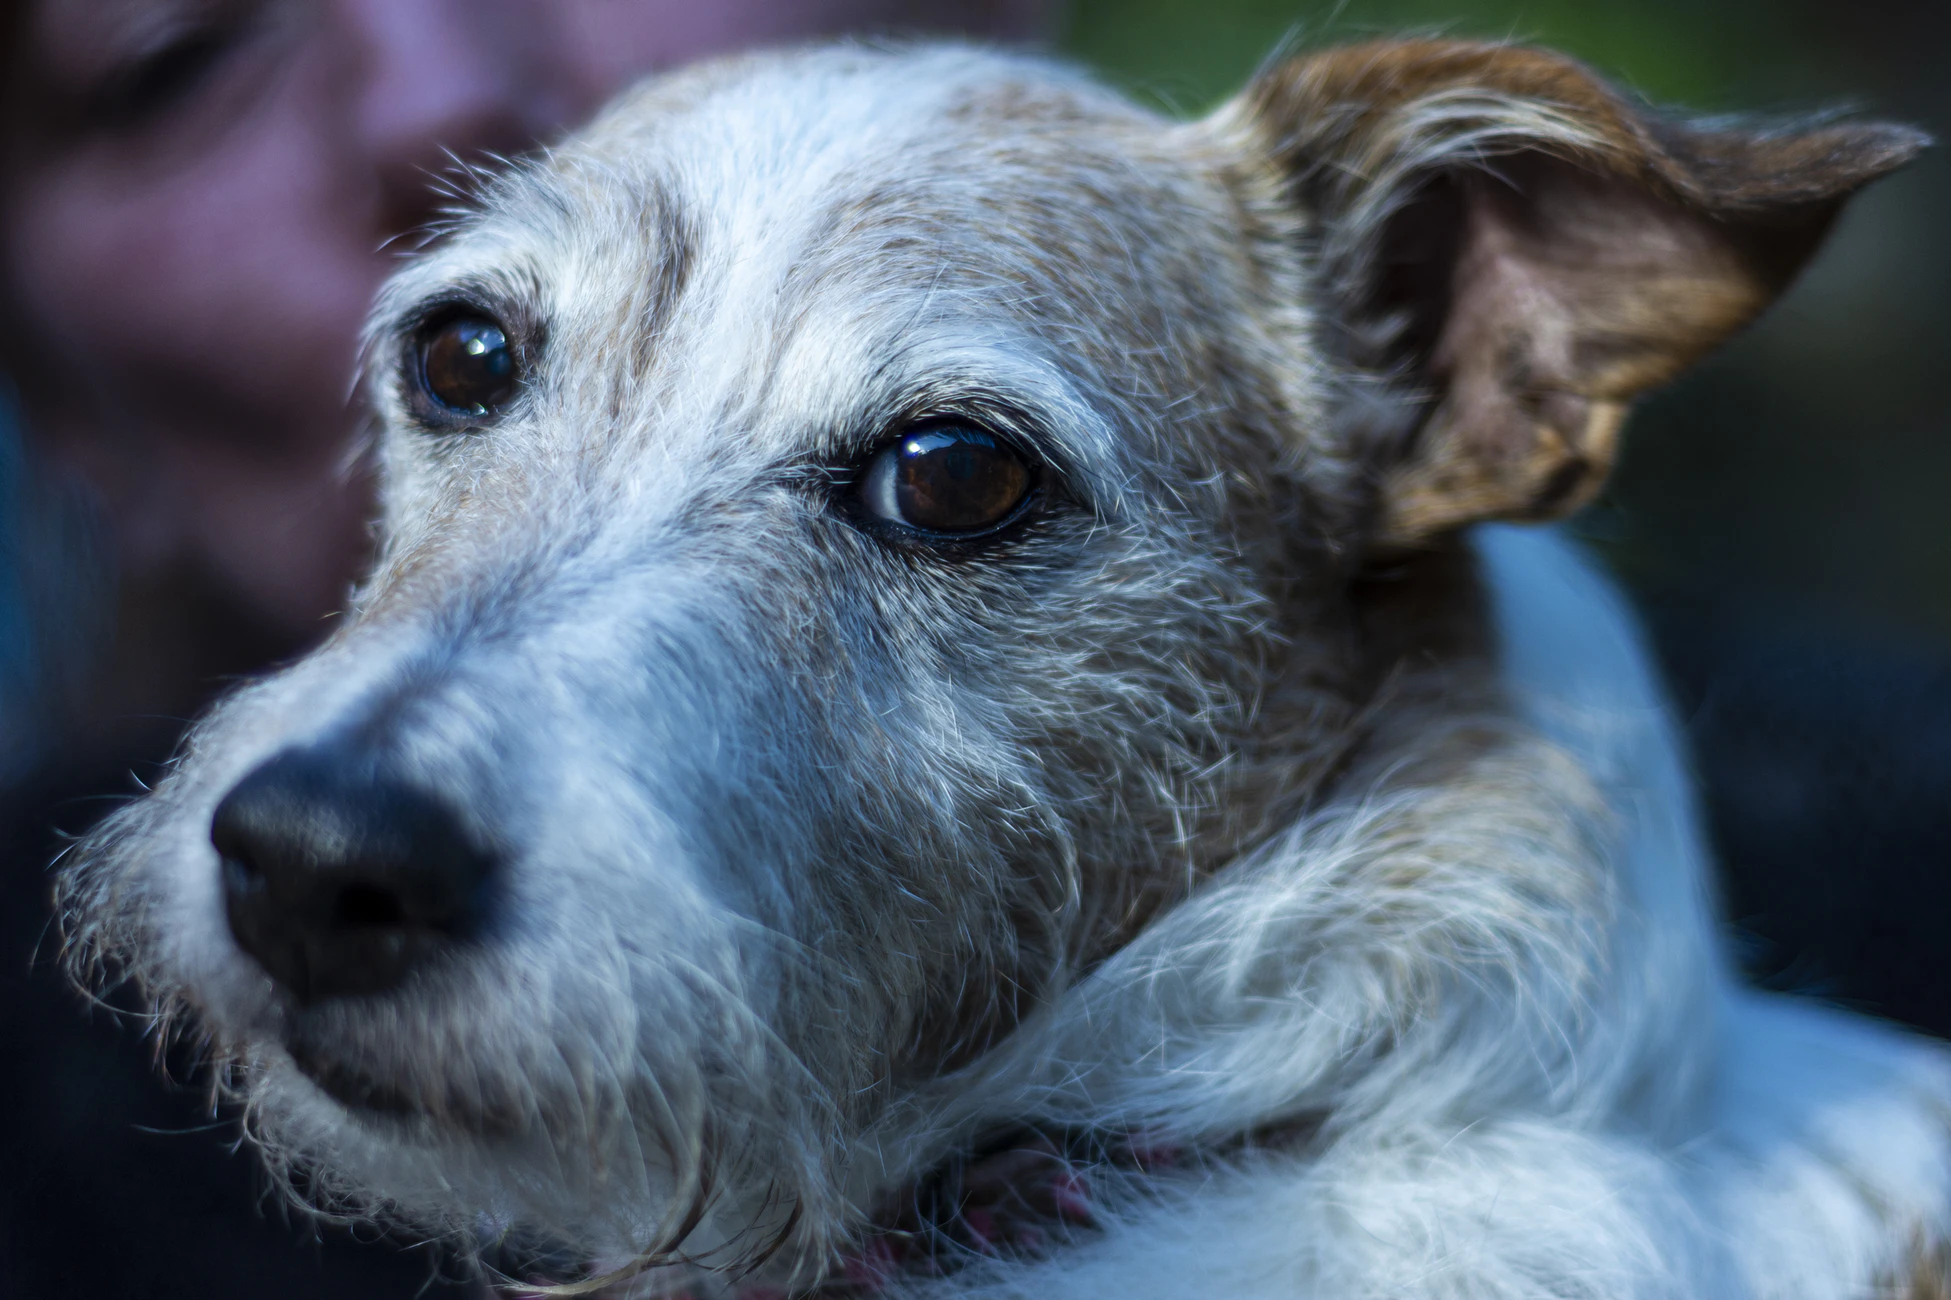 Are you calling me old? I'm just experienced. Senior pets need love too.